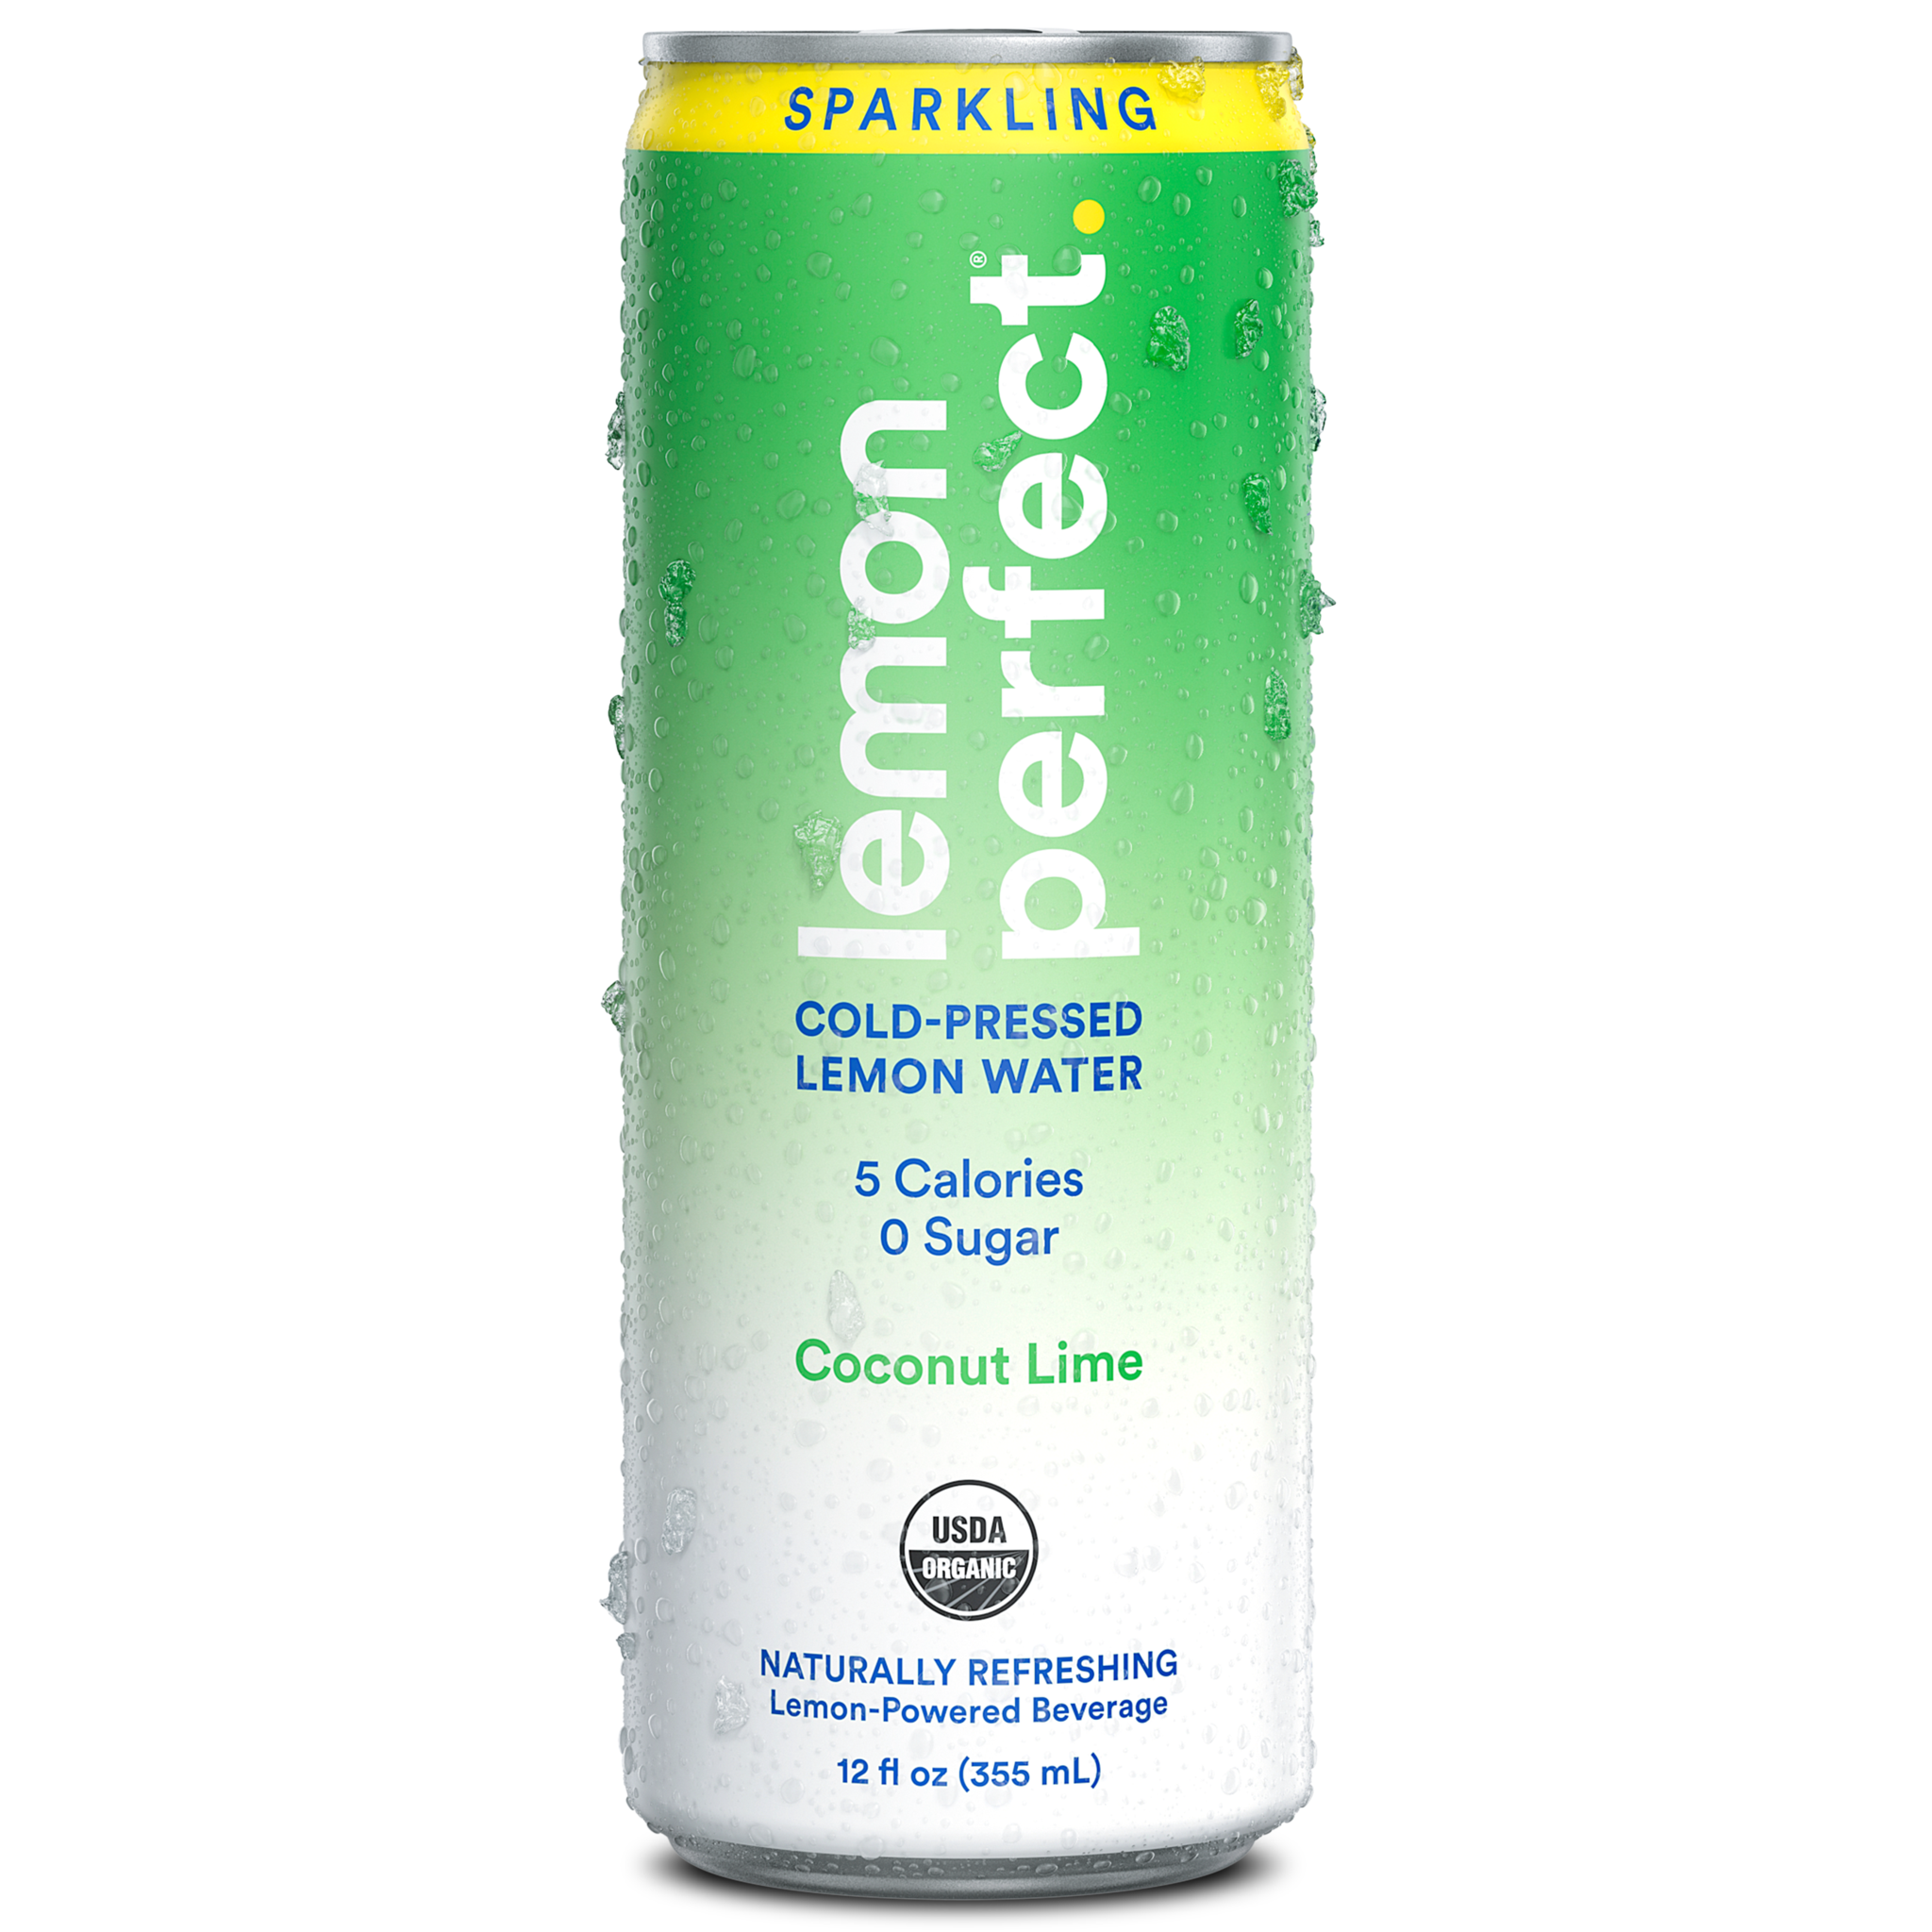 Sparkling Coconut Lime - The Lemon Perfect - Keto Certified by the Paleo Foundation